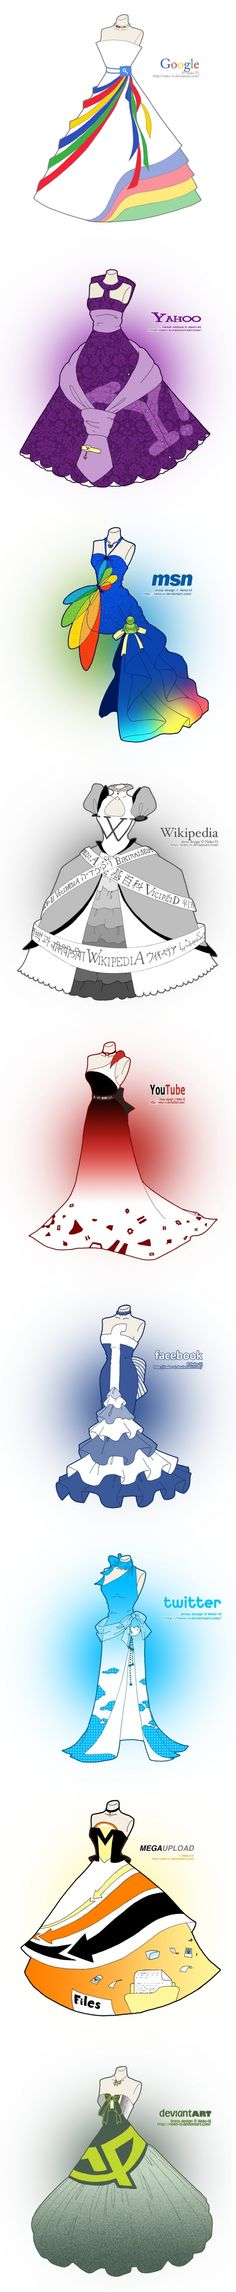 #websites meet #fashion? Popular websites re-imagined as dresses. :) (see the artists gallery for more sites, including Pinterest: http://neko-vi.deviantart.com/gallery/36793491)